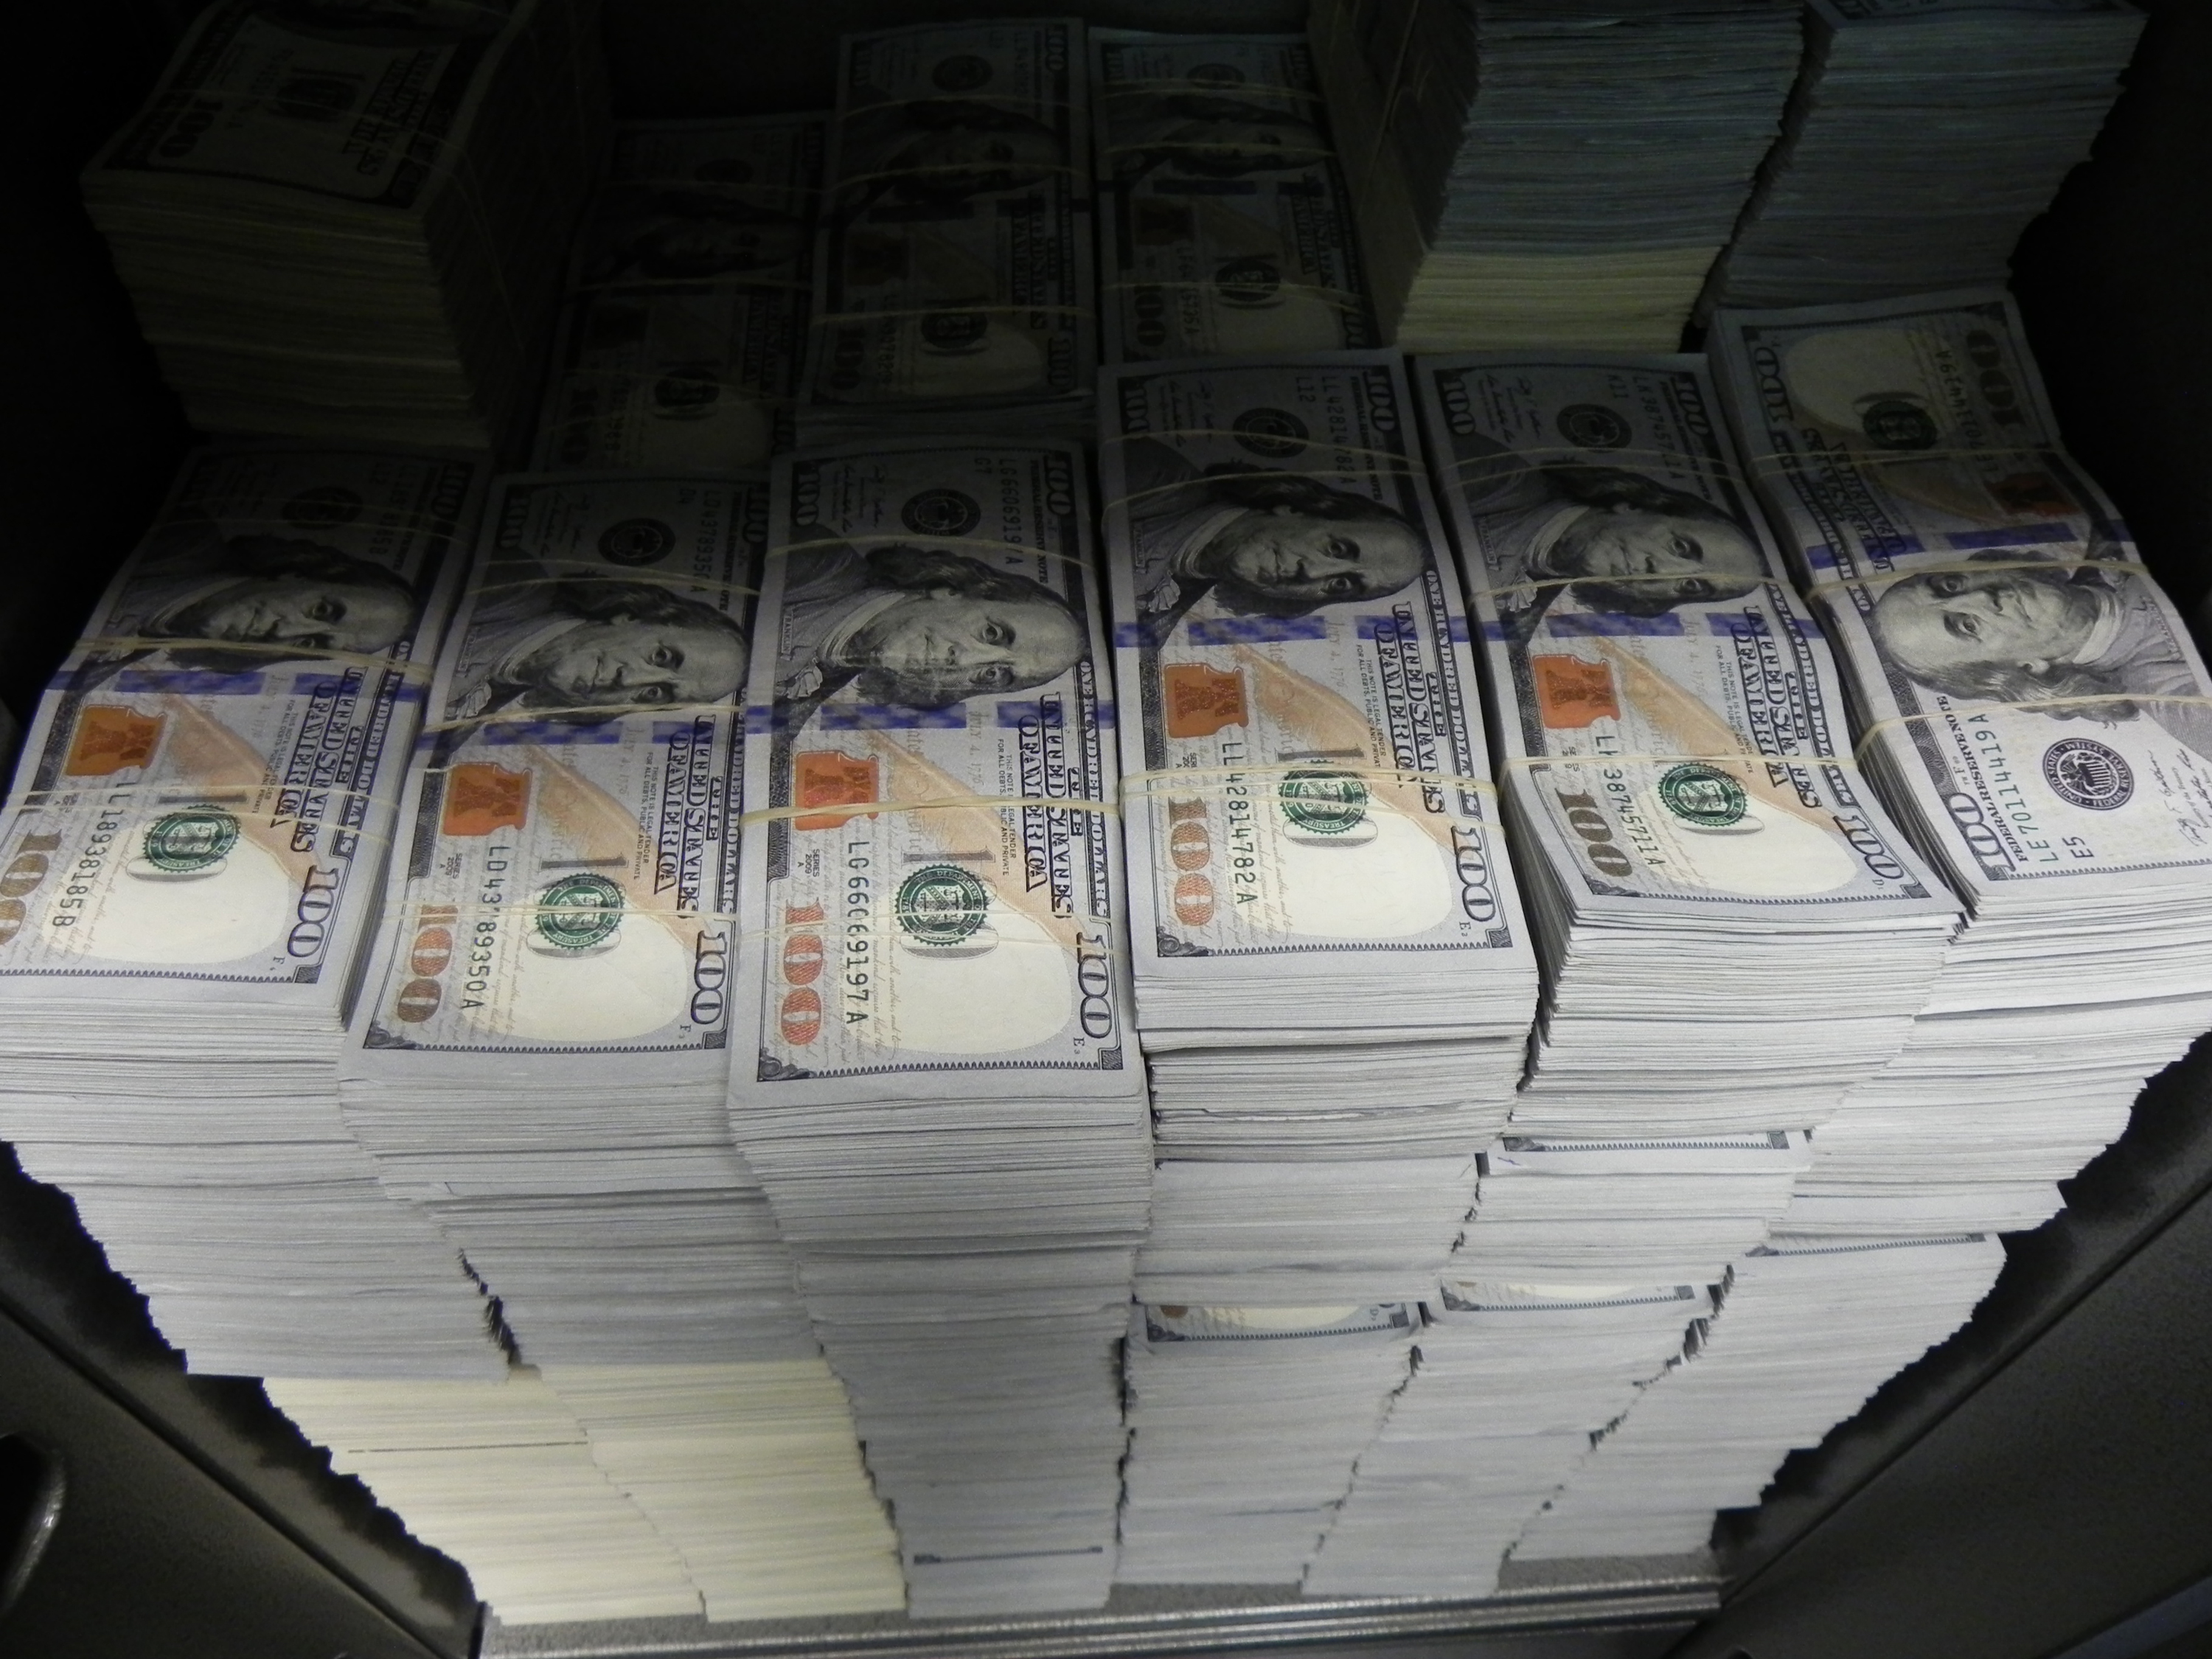 Sinaloa Drug Cartel Member Who Tried to Launder $20 Million Sentenced to 11 Years in Prison